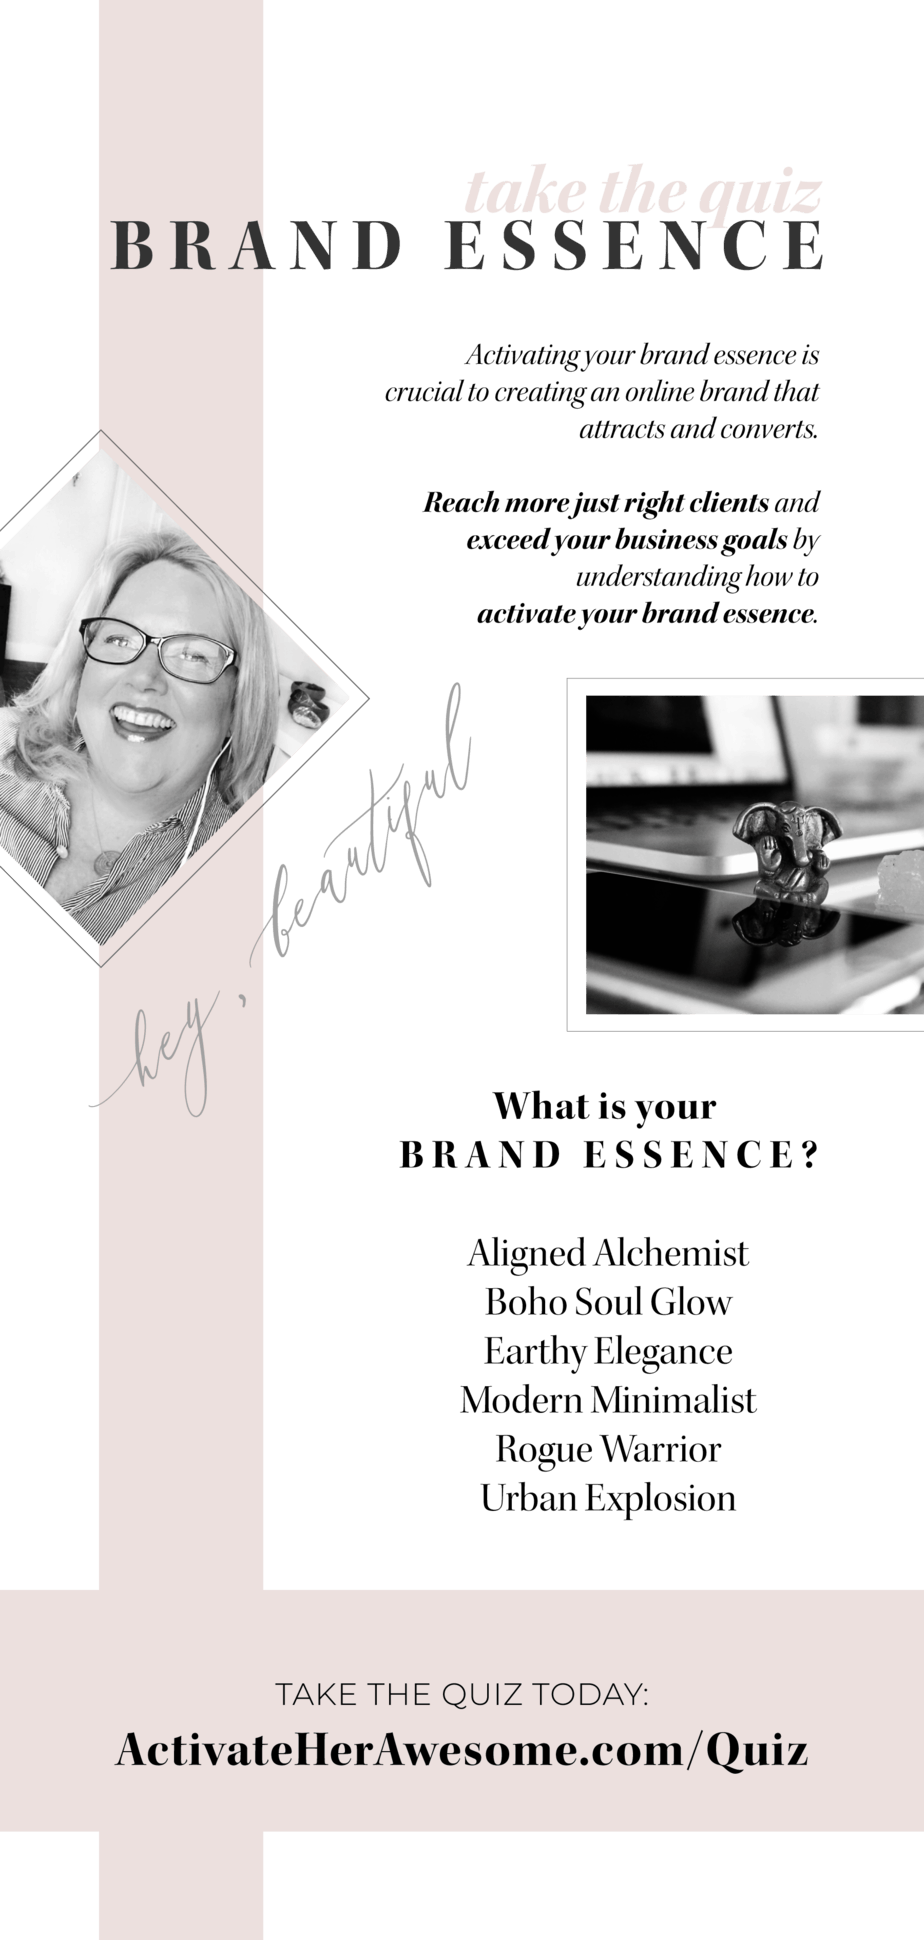 Do you want to Activate your Brand Essence Today? TAKE THE QUIZ at ActivateHerAwesome.com/Quiz